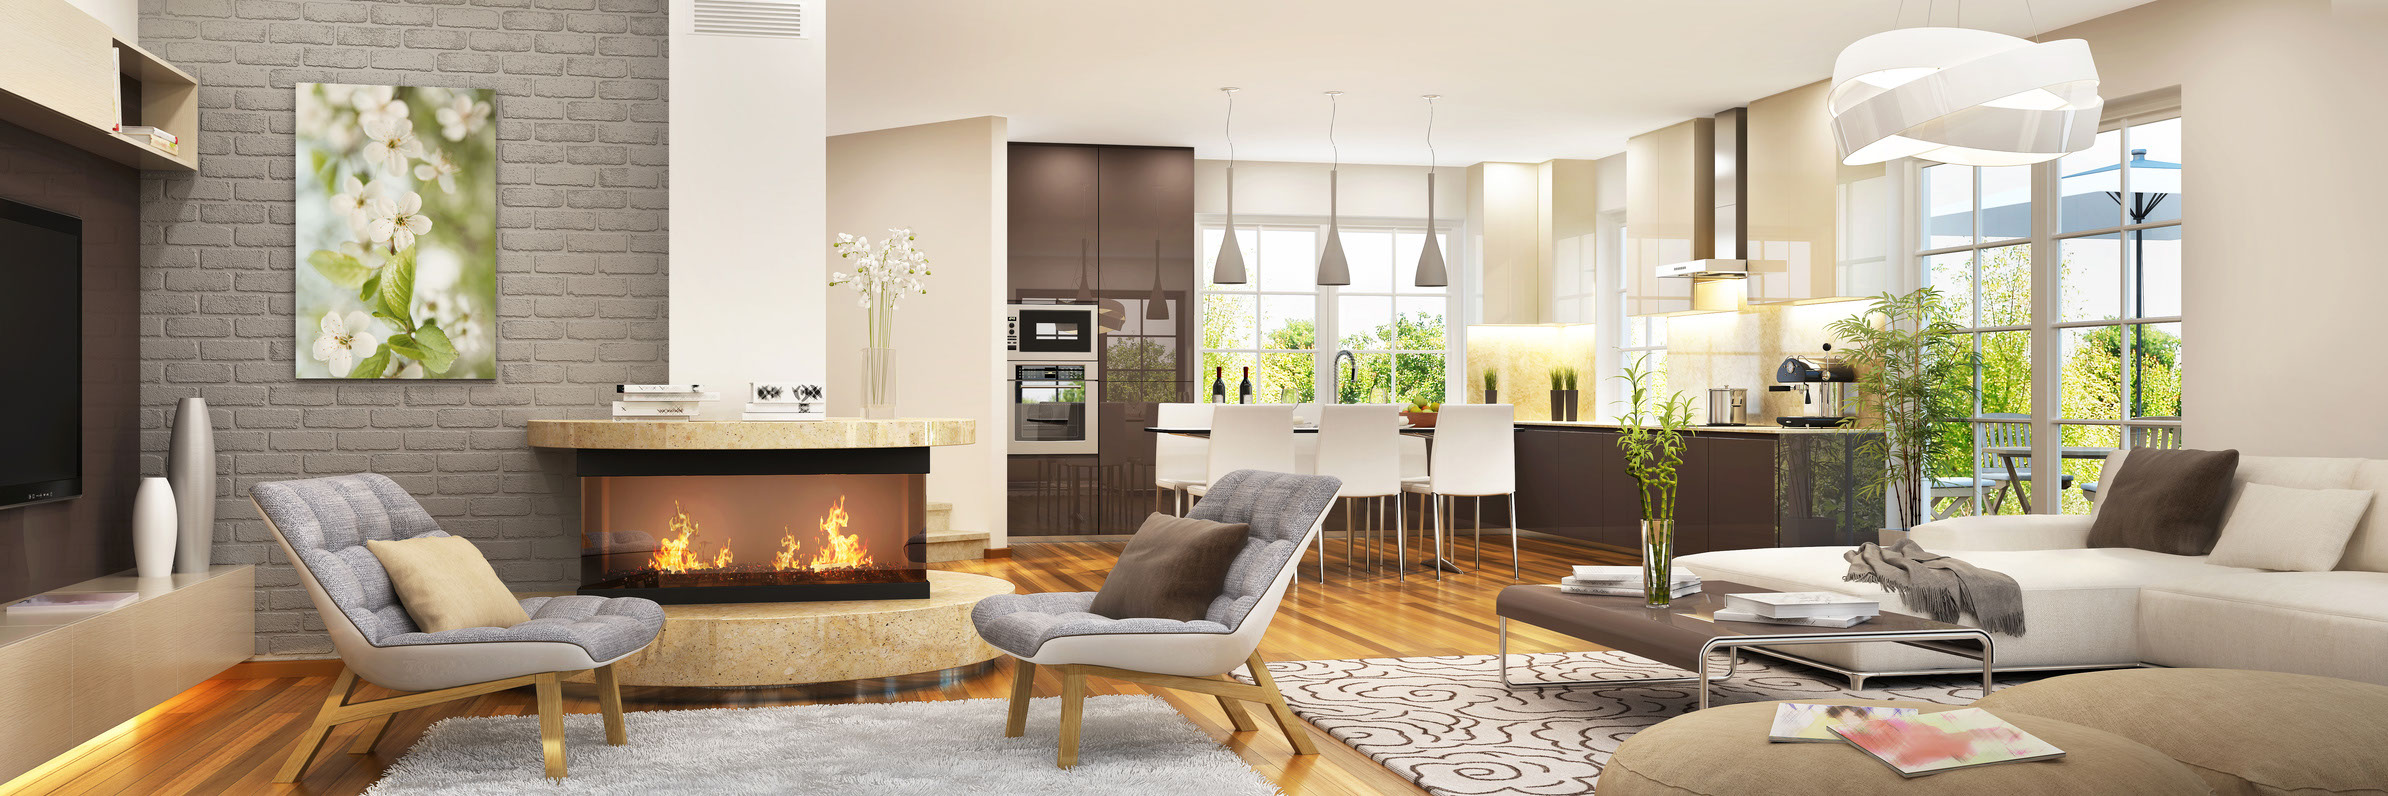 Living room with kitchen and fireplace